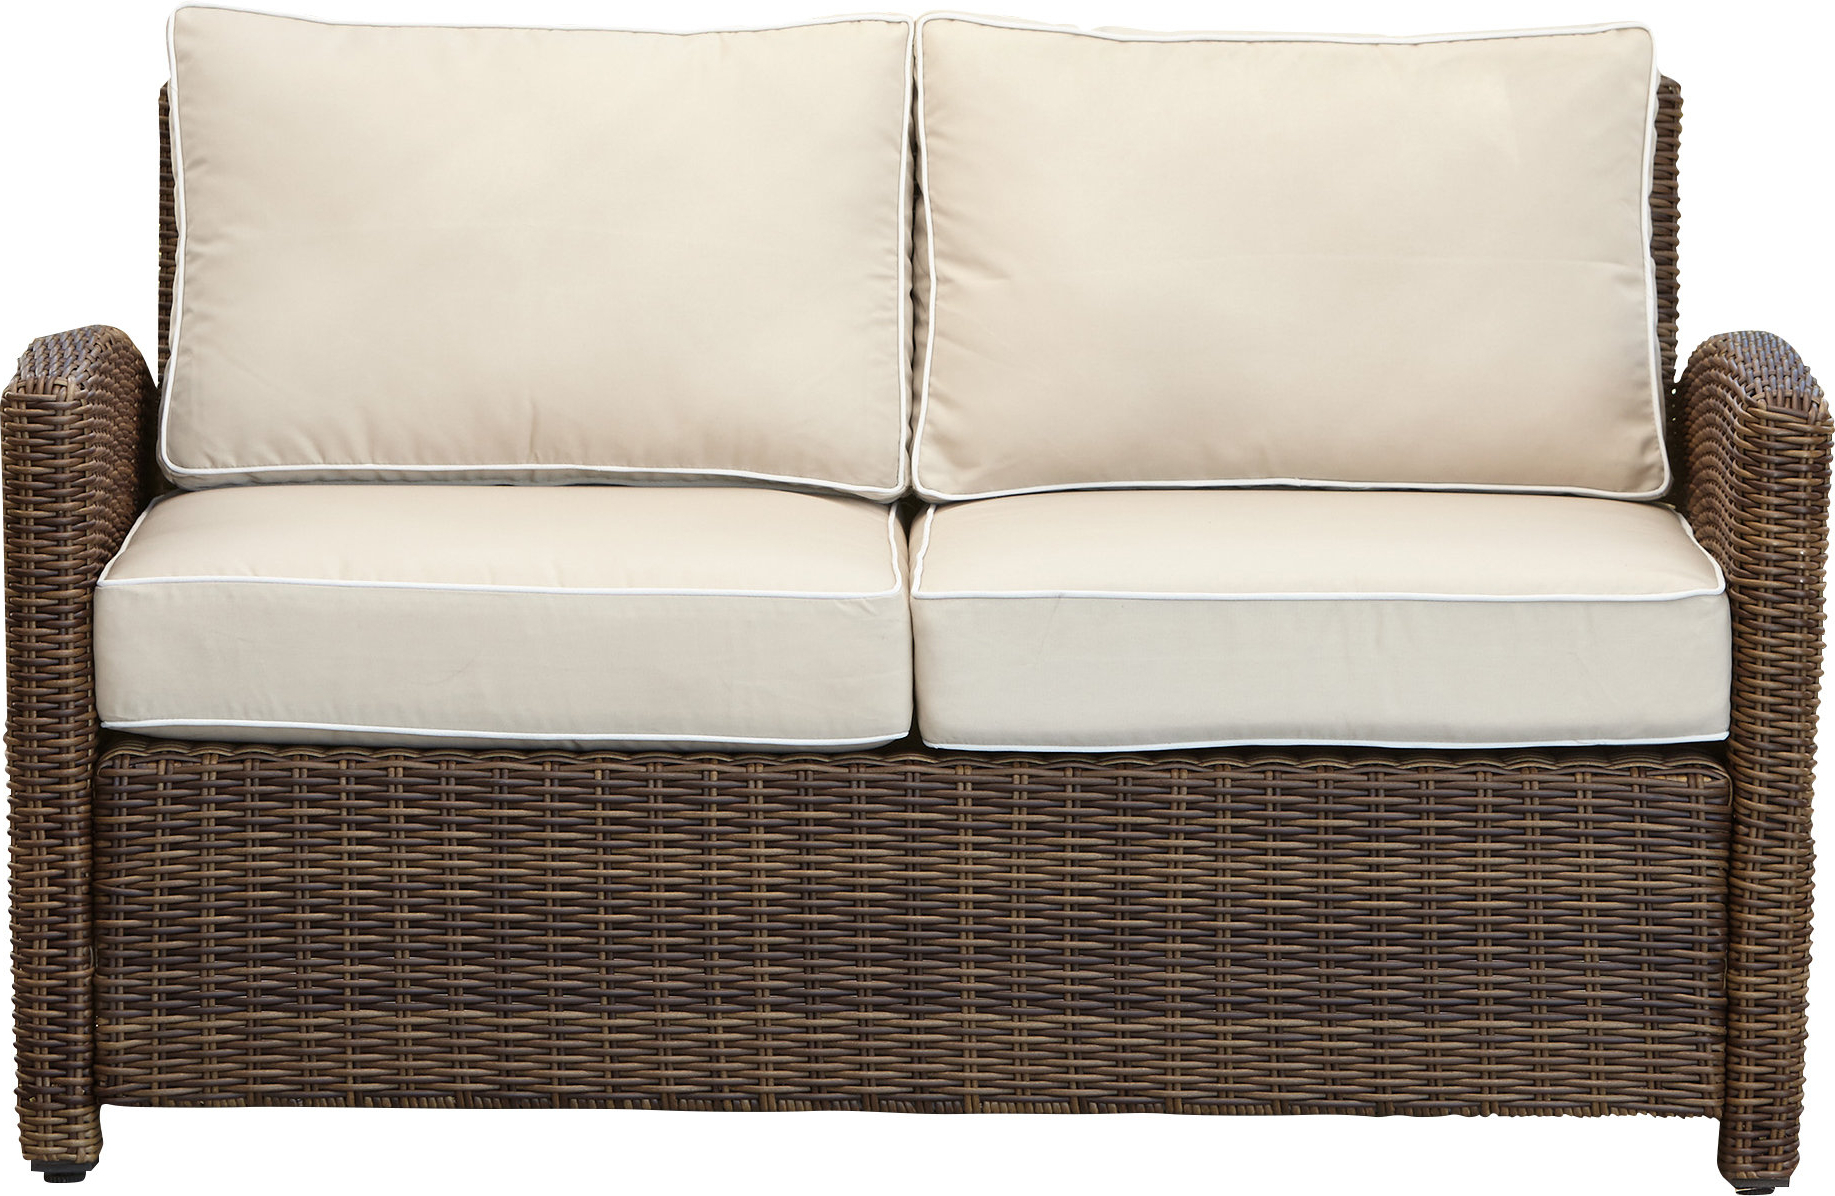 Fashionable Mosca Patio Loveseats With Cushions Throughout Lawson Wicker Loveseat With Cushions (View 14 of 20)